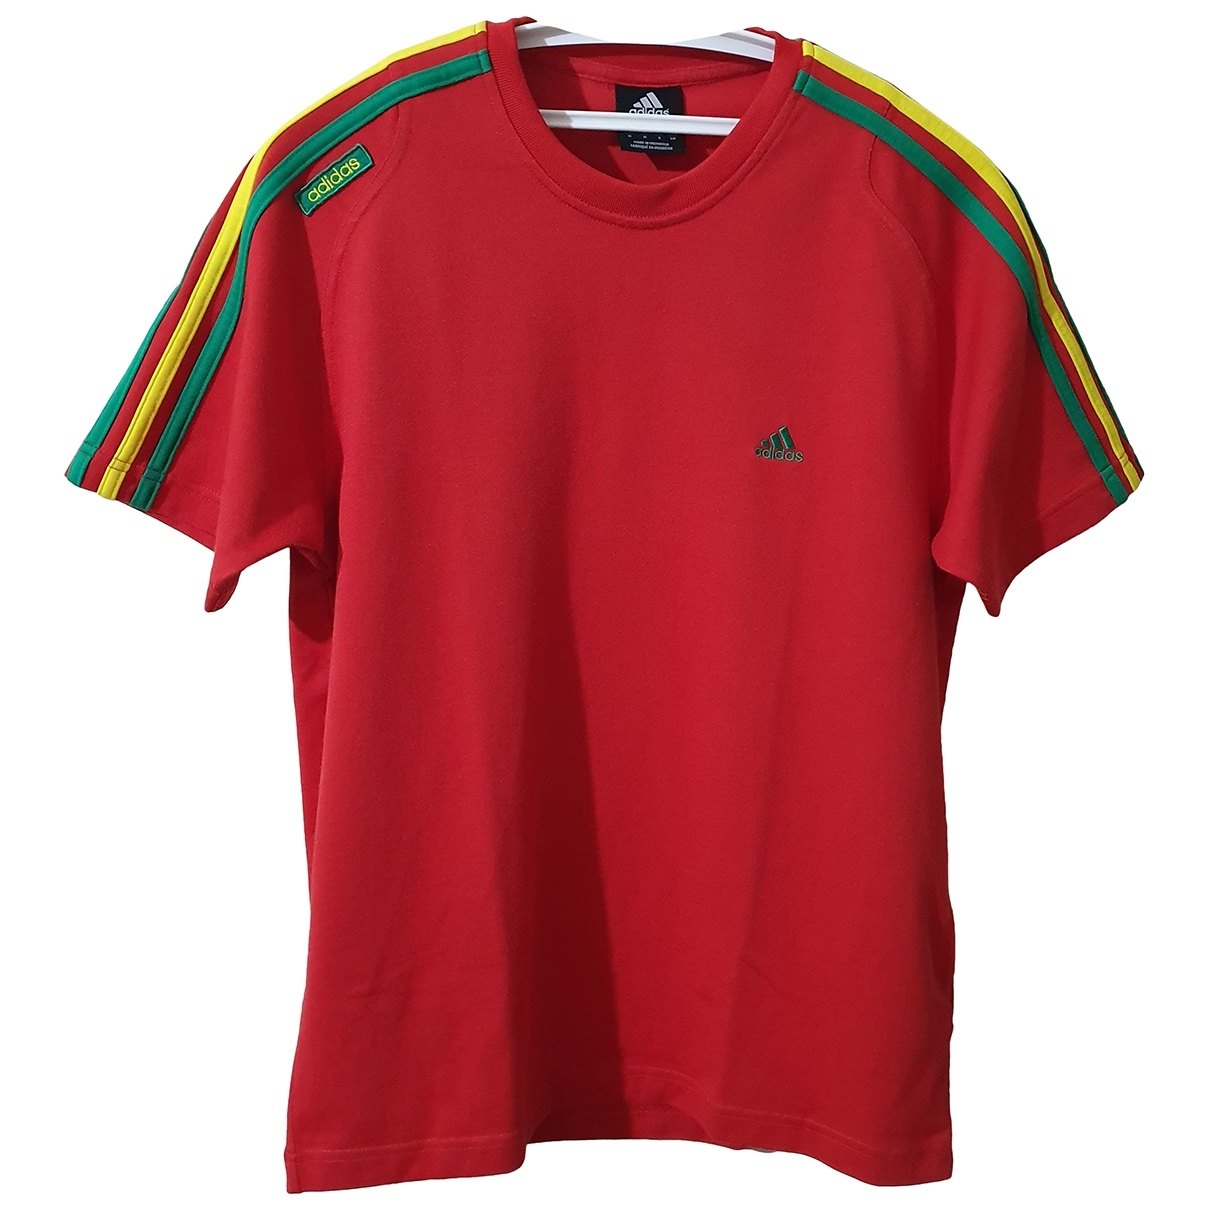 Adidas \N Multicolour Cotton T-shirts for Men M International